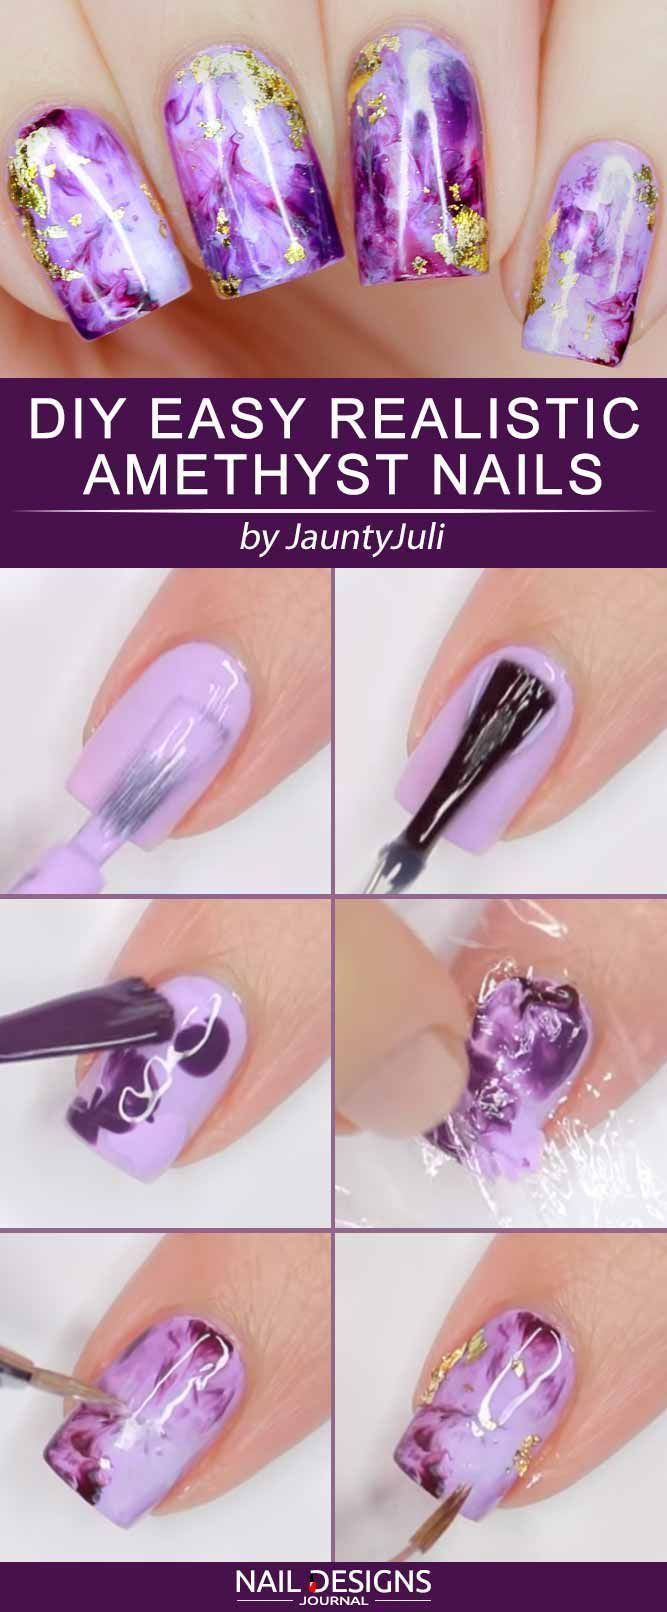 20 Super Easy Ideas For Diy Nails Every Girl Should Try While